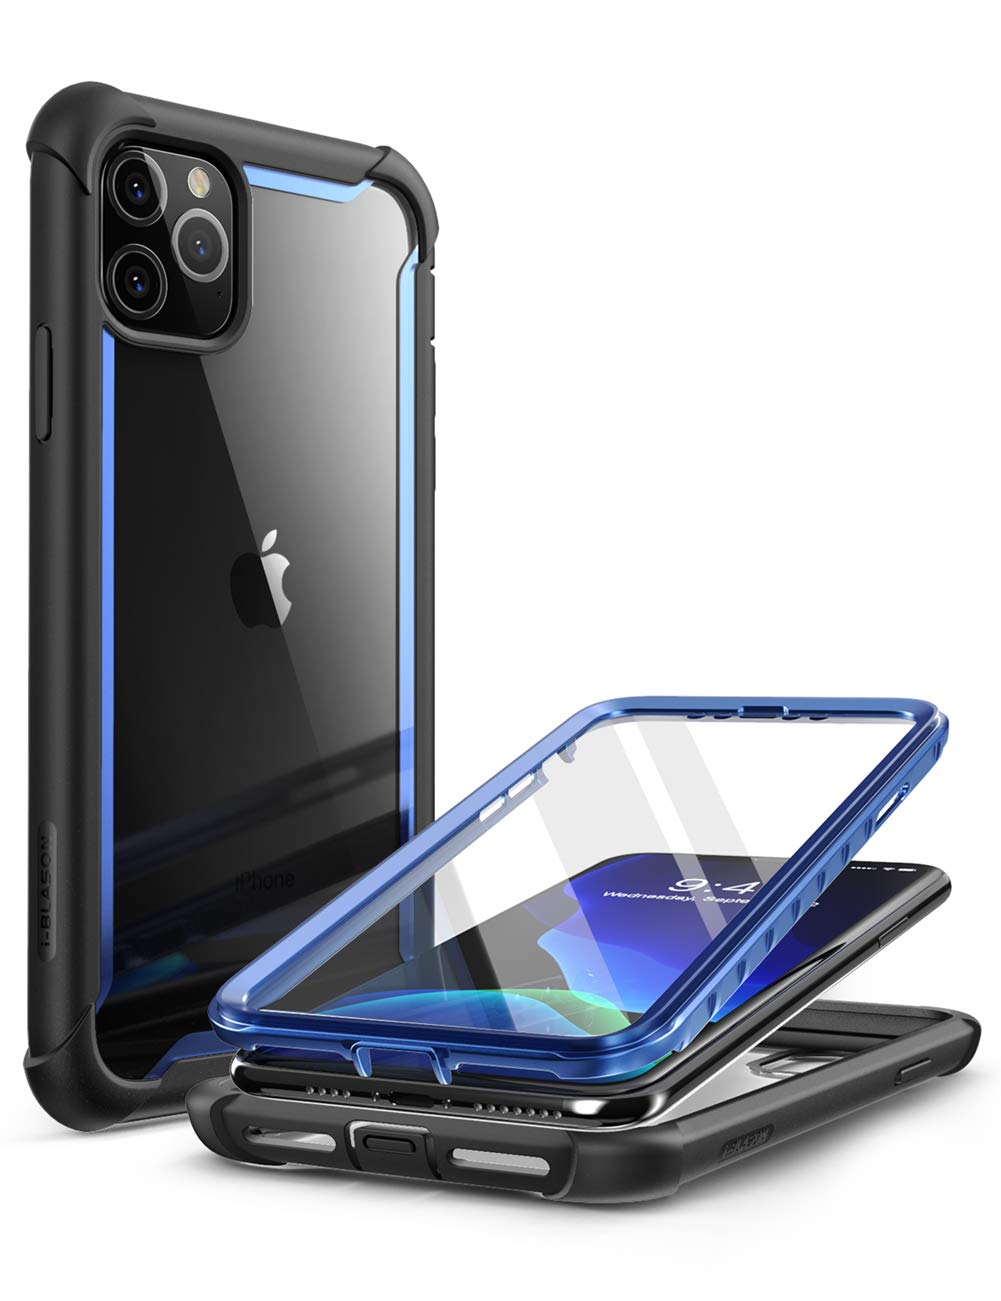 i-Blason Ares Case for iPhone 11 Pro Max 2019 Release, Dual Layer Rugged Clear Bumper Case with Built-in Screen Protector (Blue)